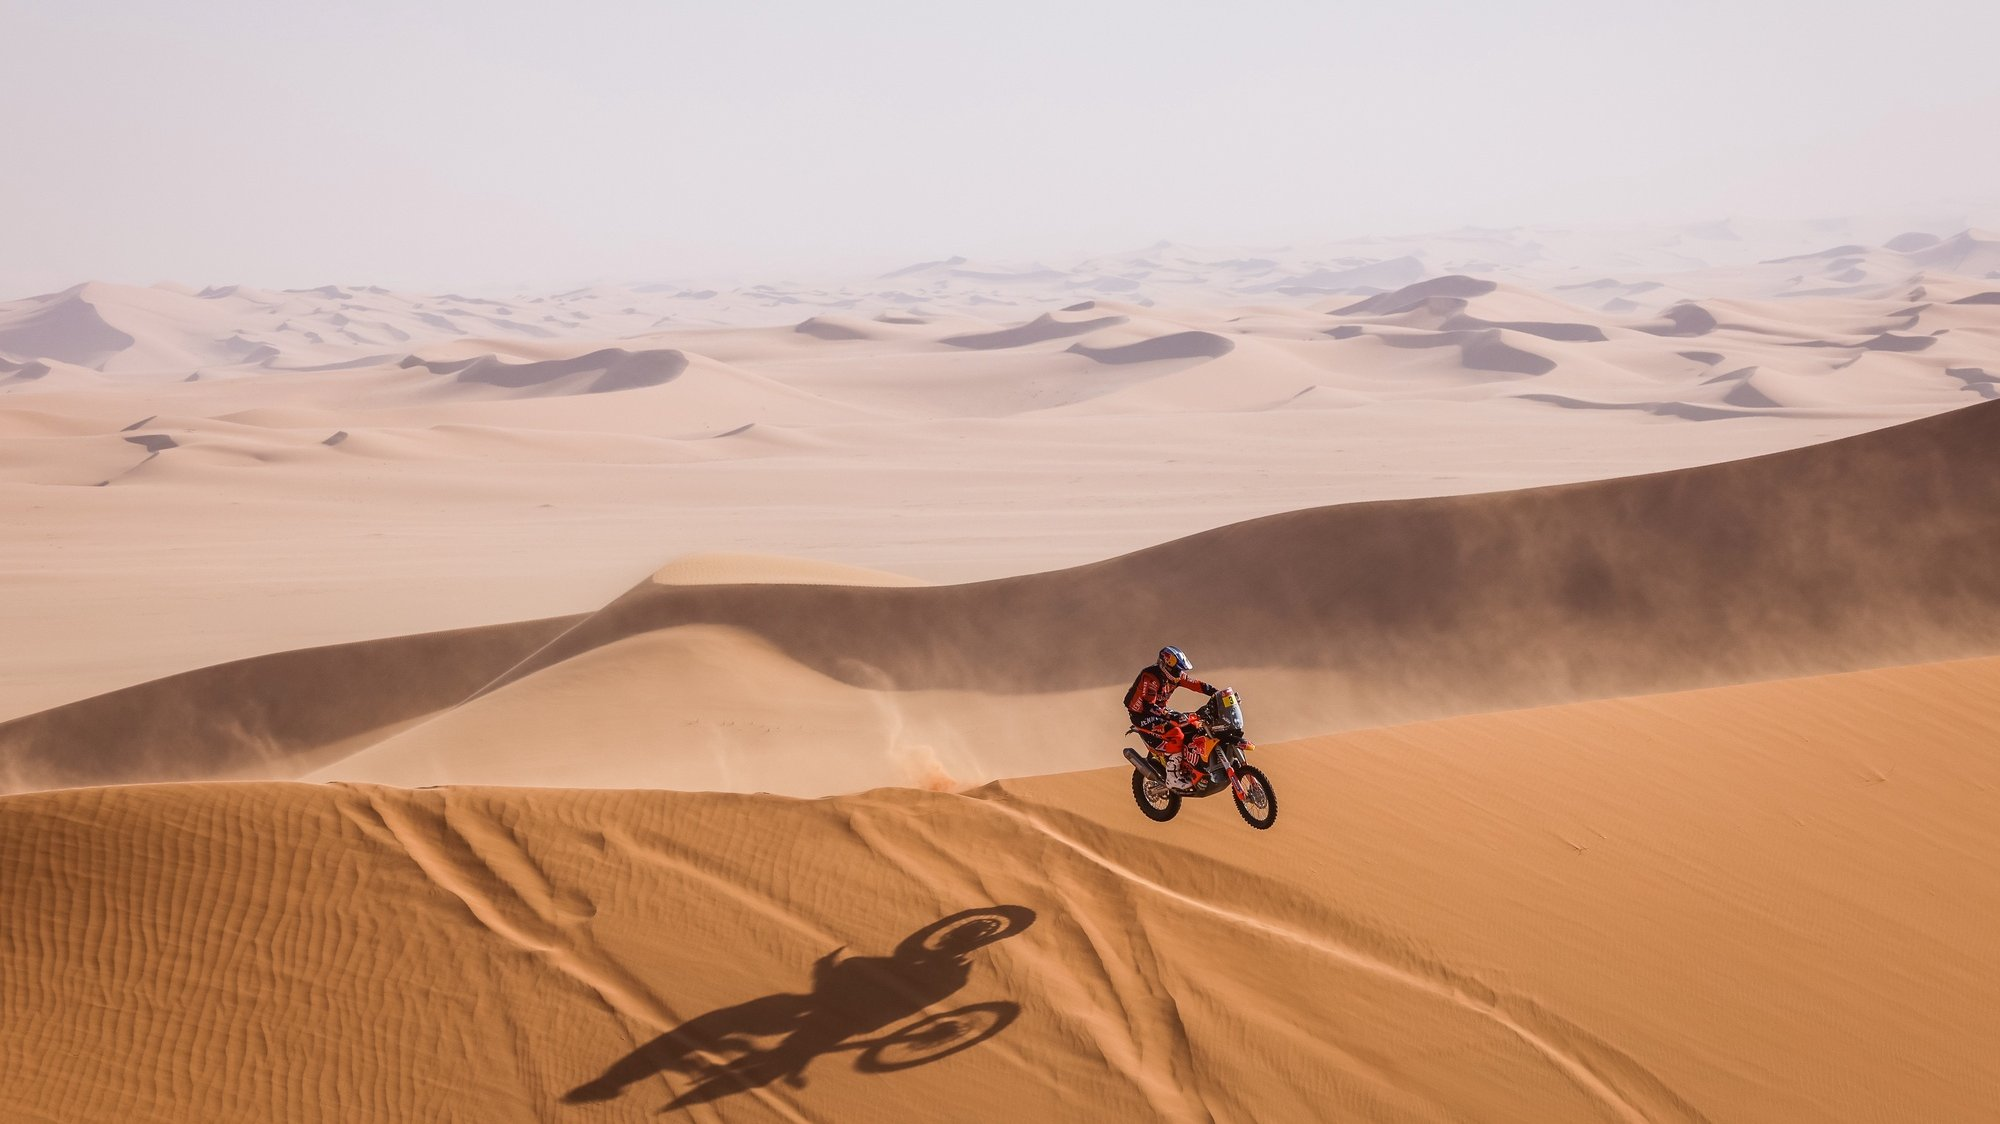 epa08920178 A handout photo made available by ASO of Toby Price of Australia, KTM, Red Bull KTM Factory Team, in action during the 3rd stage of the Dakar 2021 with start and finish in Wadi Al Dawasir, in Saudi Arabia on January 5, 2021,  EPA/Frederic Le Floch HANDOUT via ASO SHUTTERSTOCK OUT HANDOUT EDITORIAL USE ONLY/NO SALES/NO ARCHIVES